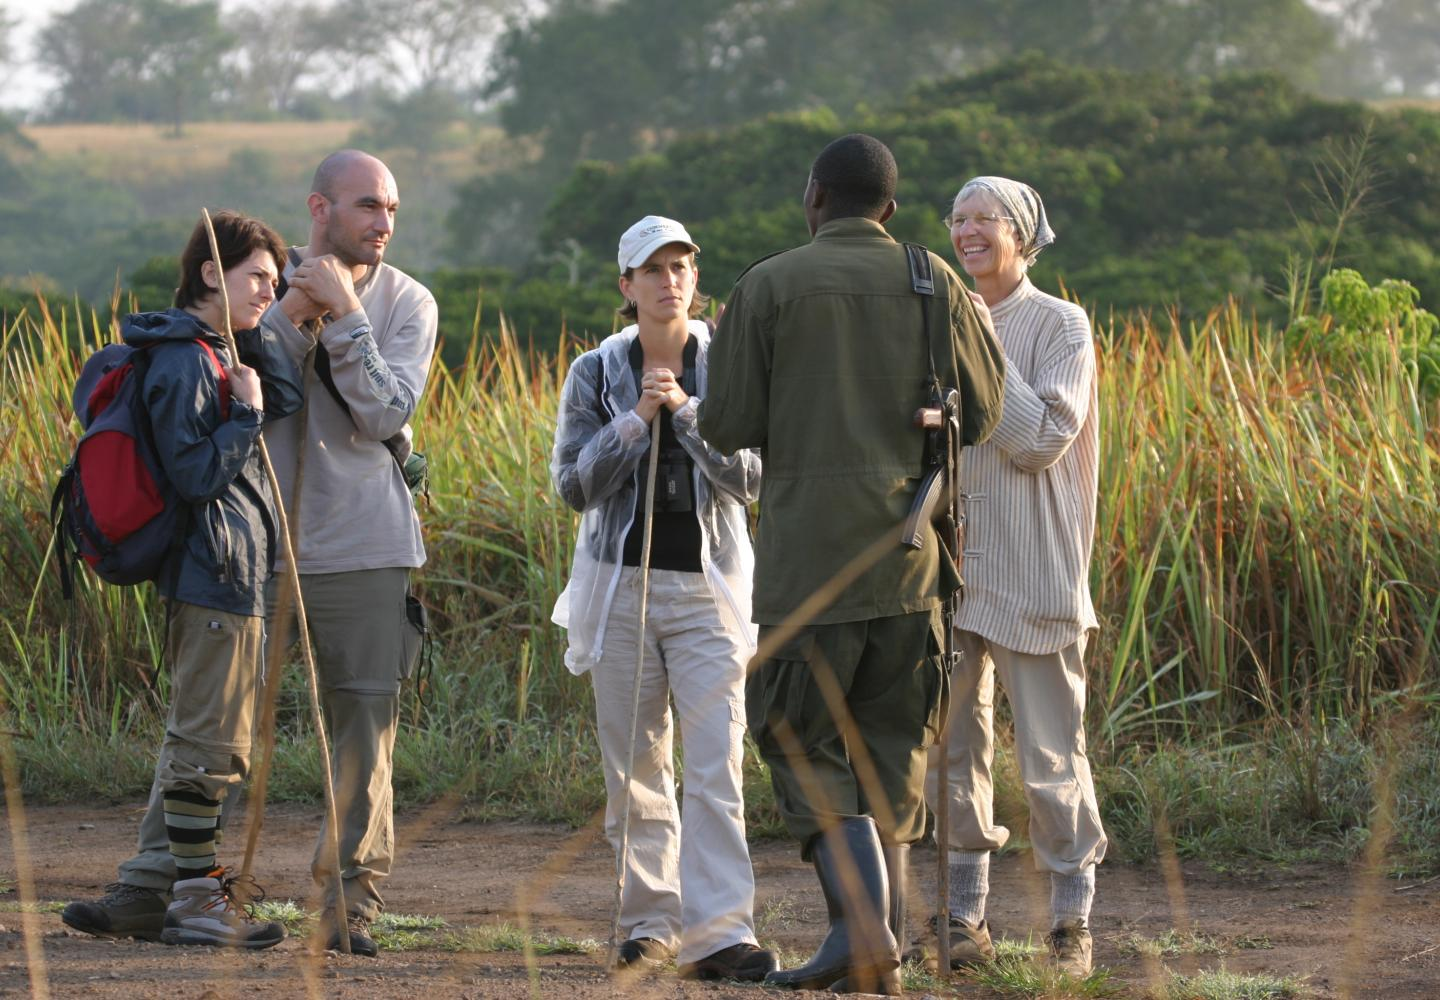 Briefing by Ranger before the Kyambura hike (Queen Elizabeth NP, Uganda)nda